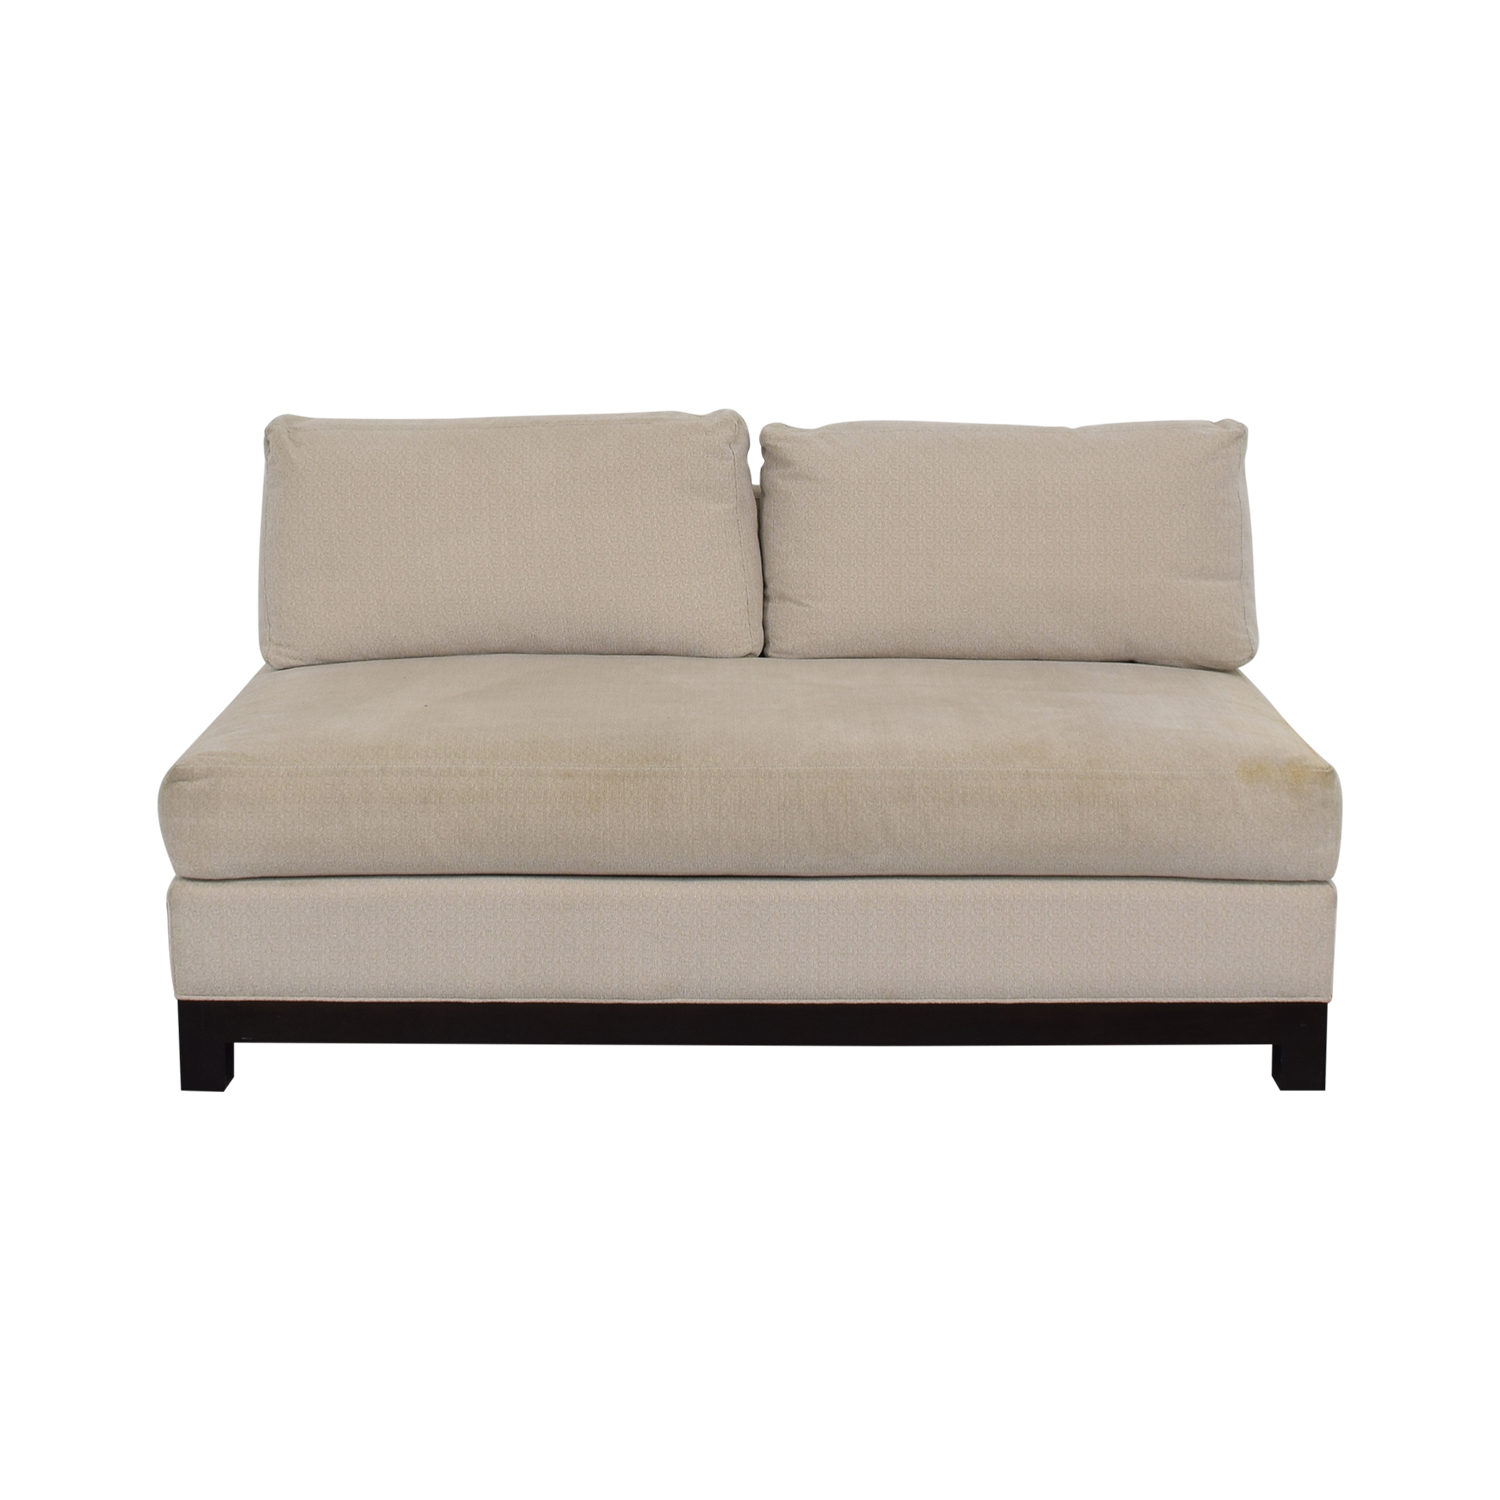 ABC Carpet & Home ABC Carpet & Home Cisco Brothers Armless Loveseat price